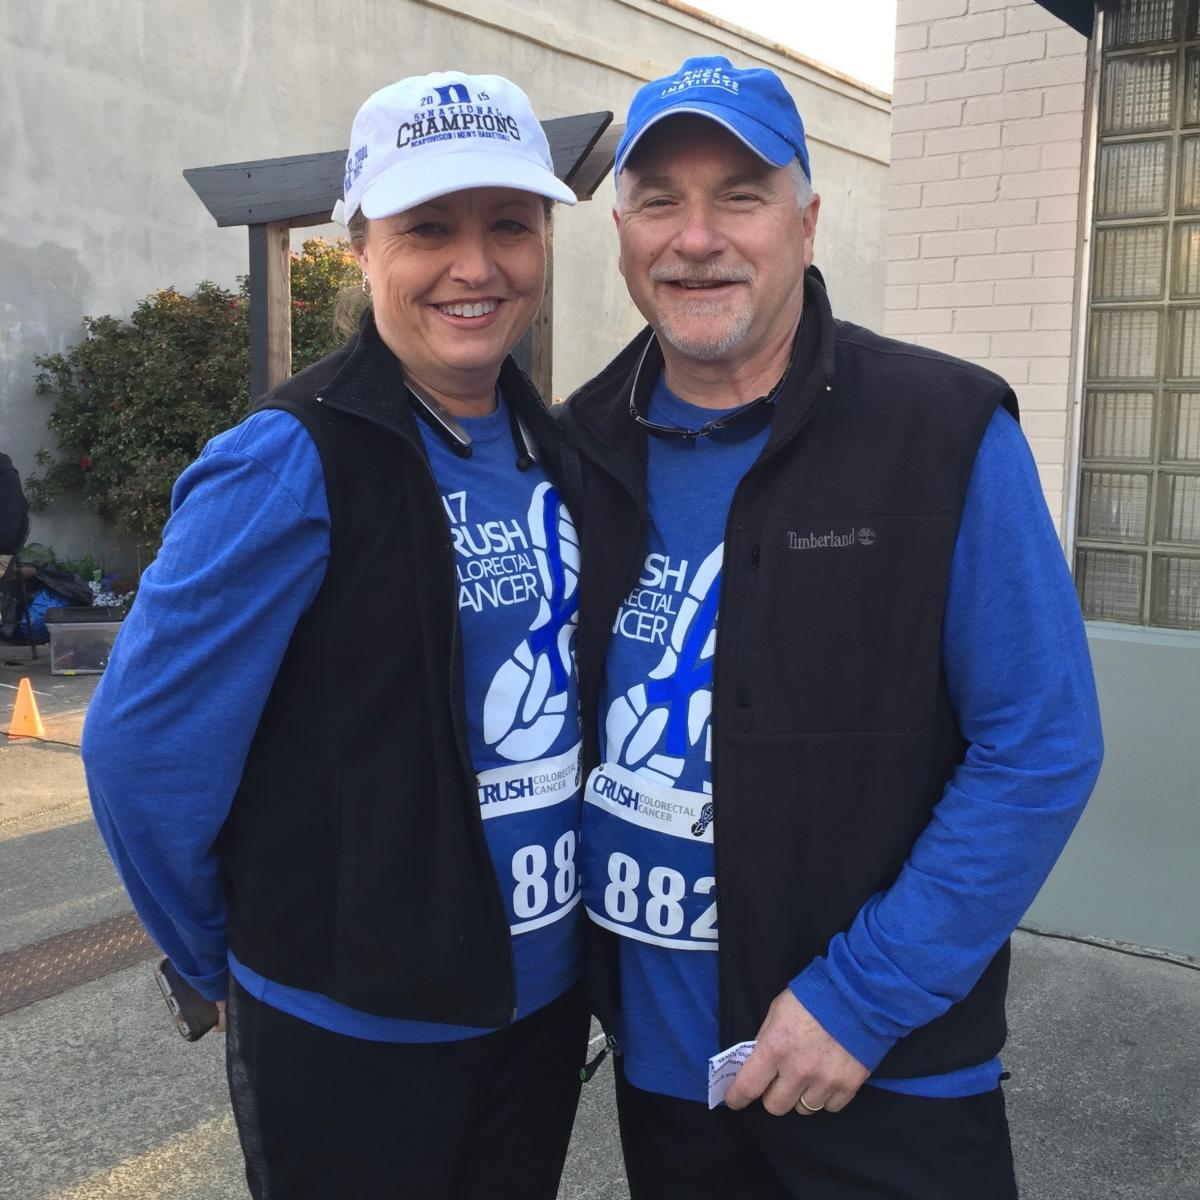 Steven Patierno, PhD, and his wife Kim are pictured here at DCI's 2017 CRUSH Colorectal Cancer 5K event. They first met in Houston when she was a cardiology nurse at Houston Methodist Hospital and he was a PhD student next door at University of Texas Health Science Center.